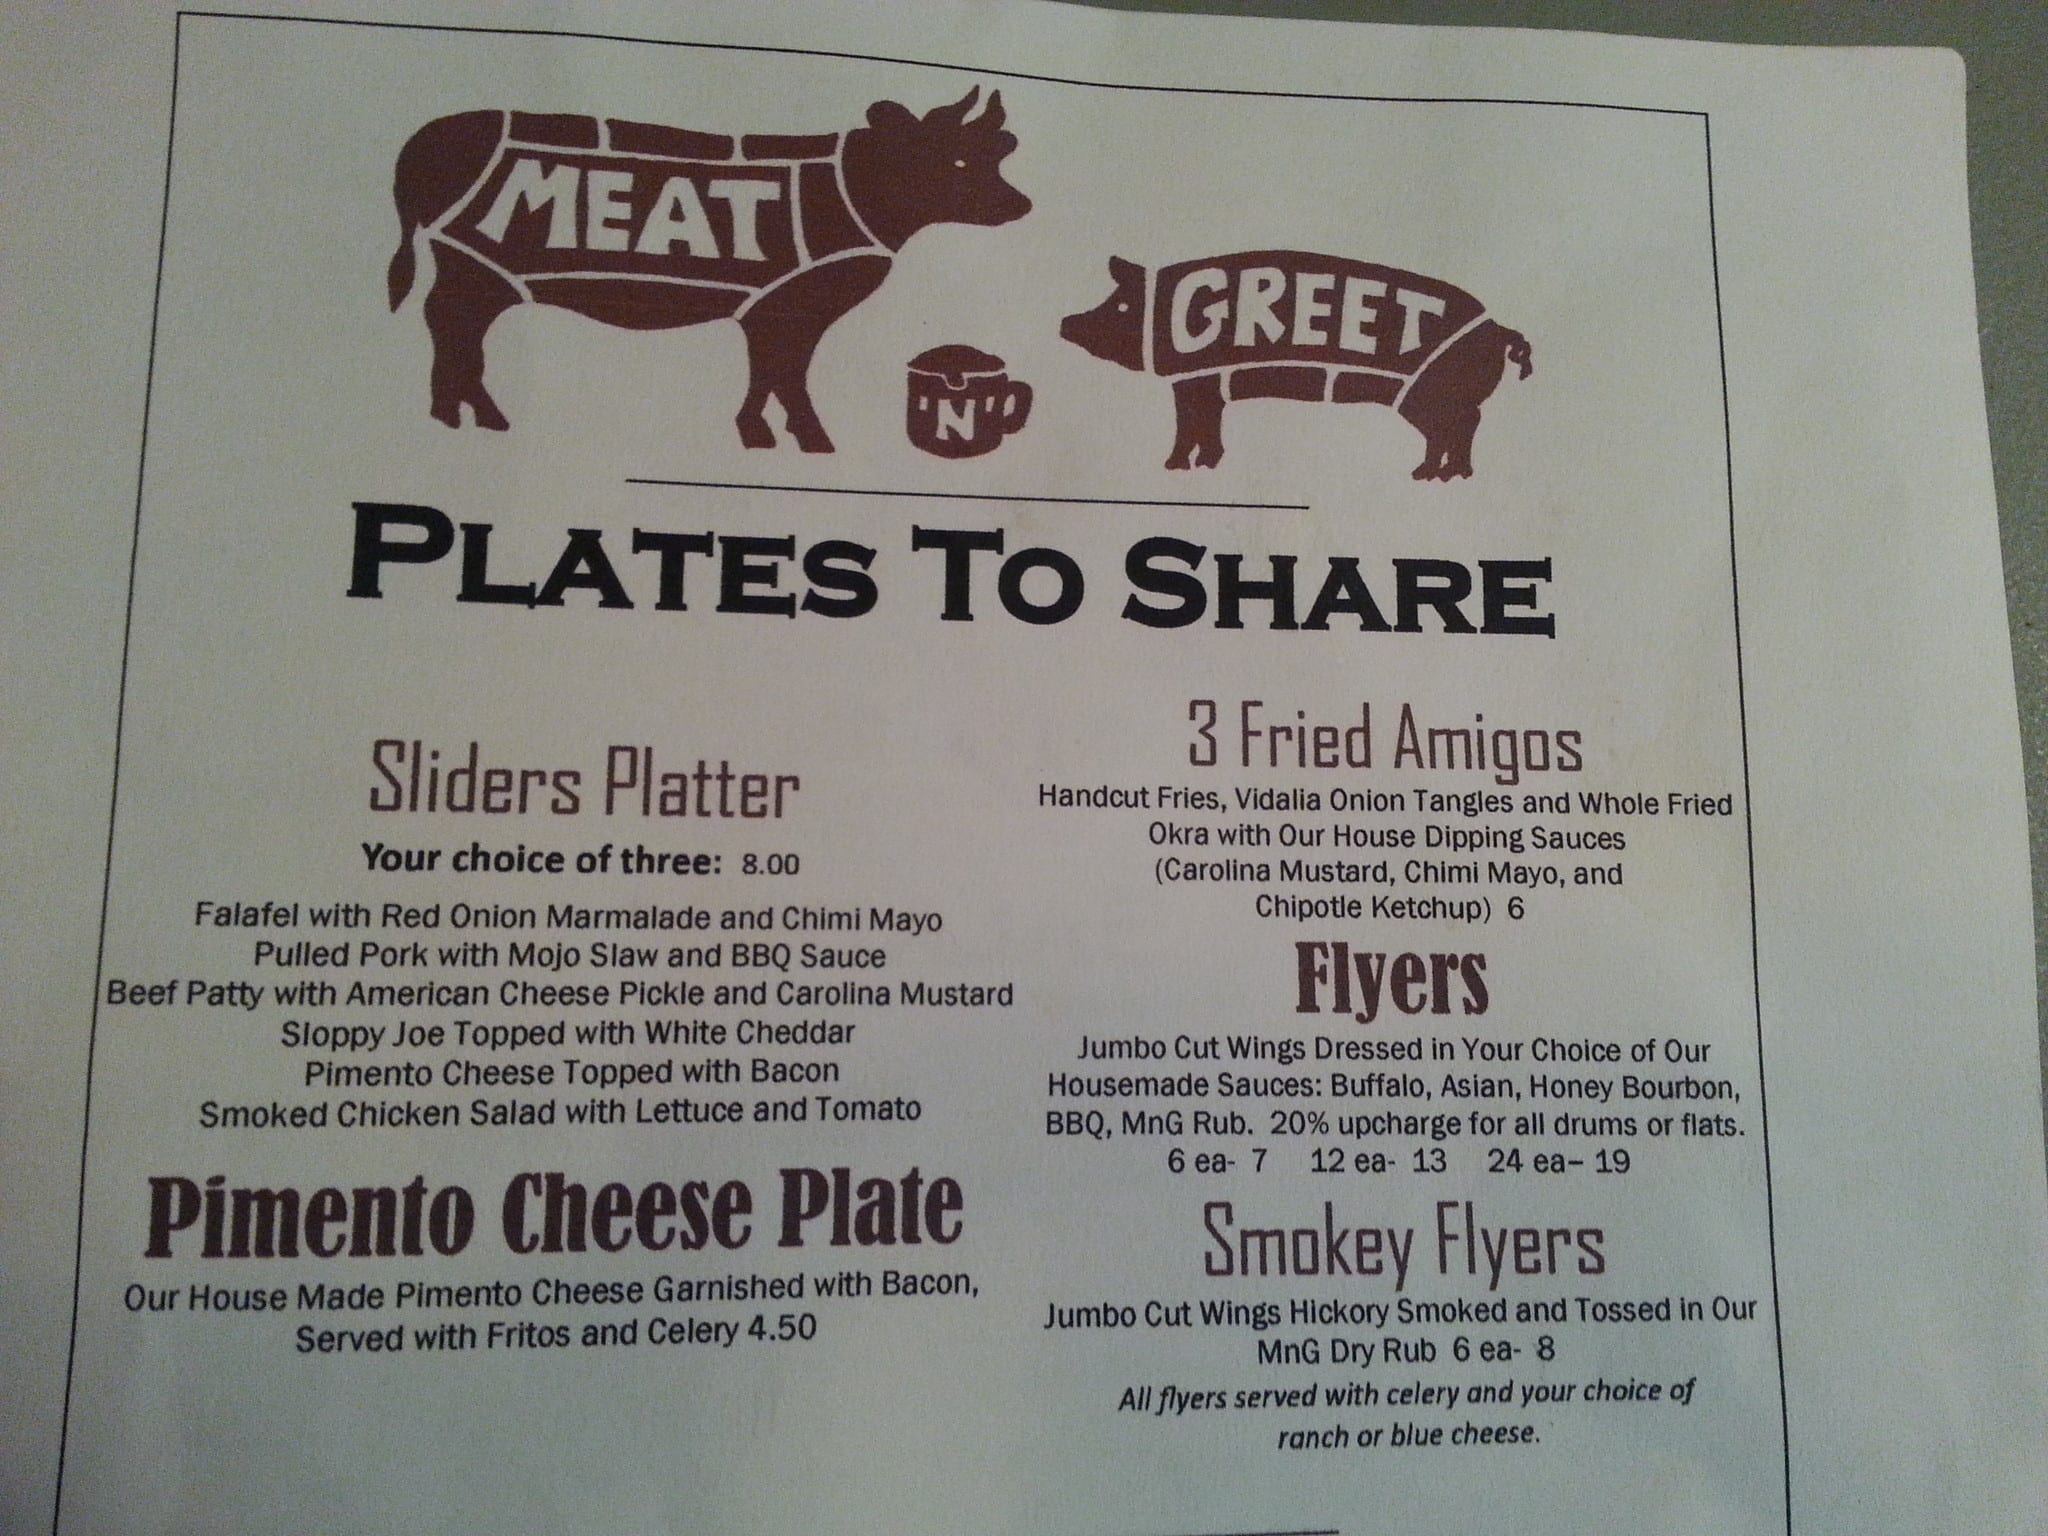 Menu At Meat N Greet Restaurant Newnan